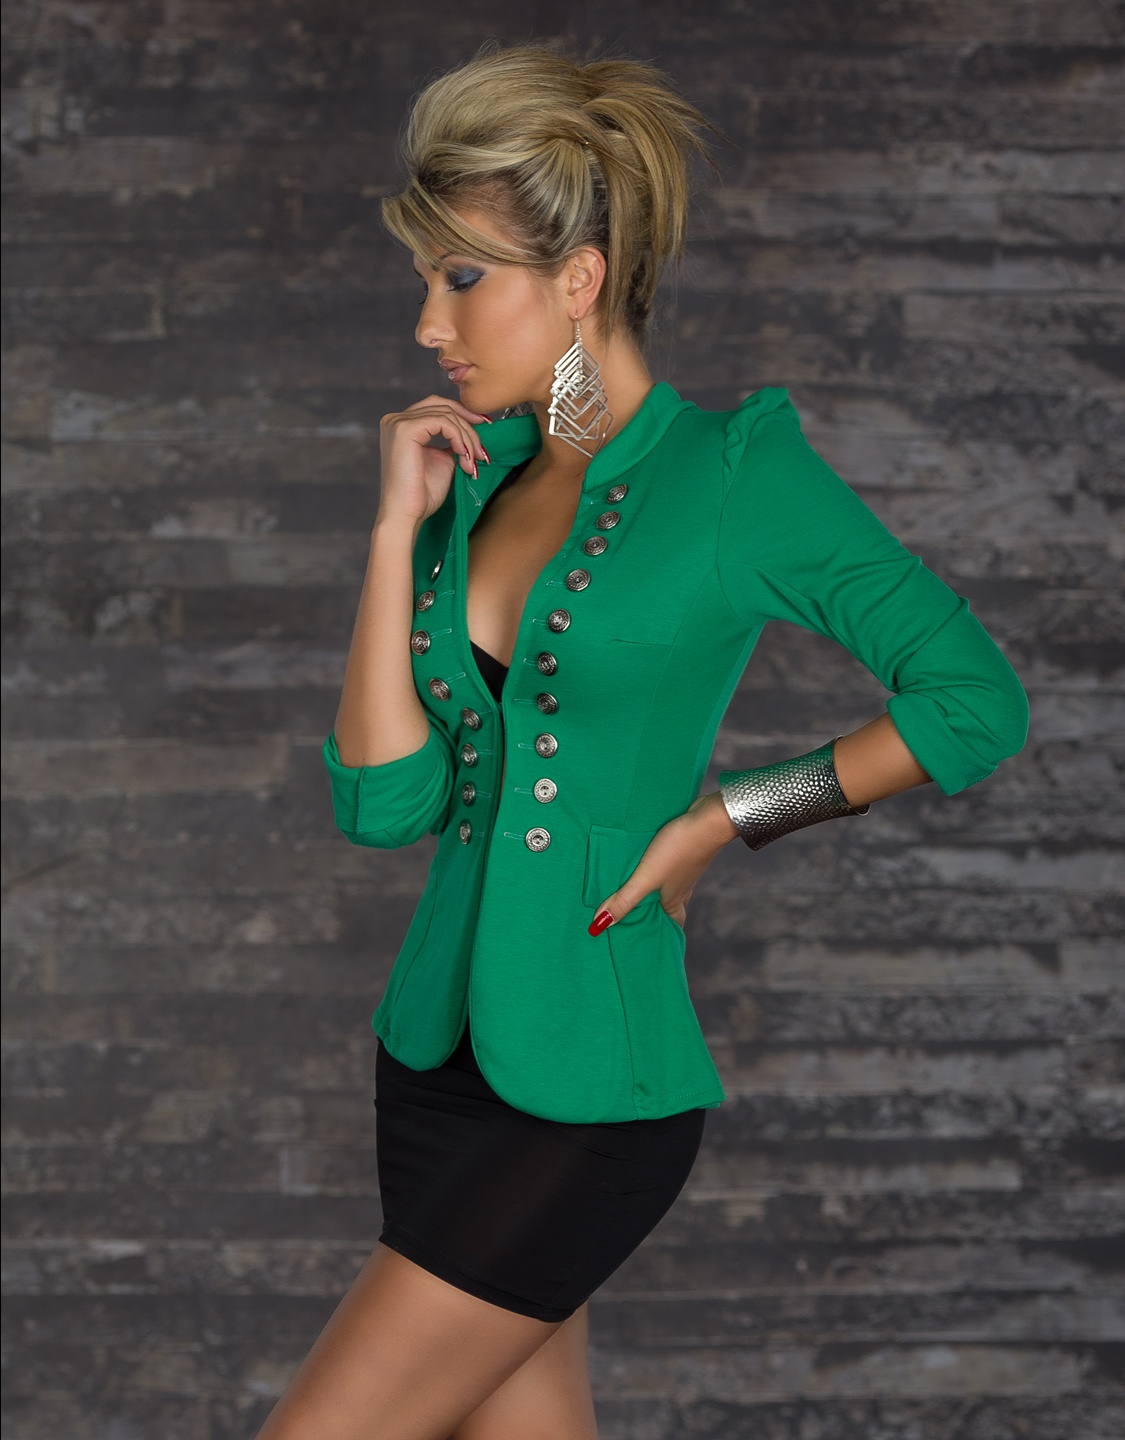 Green Army Jacket With Double Buttons & Stand-Up Collar